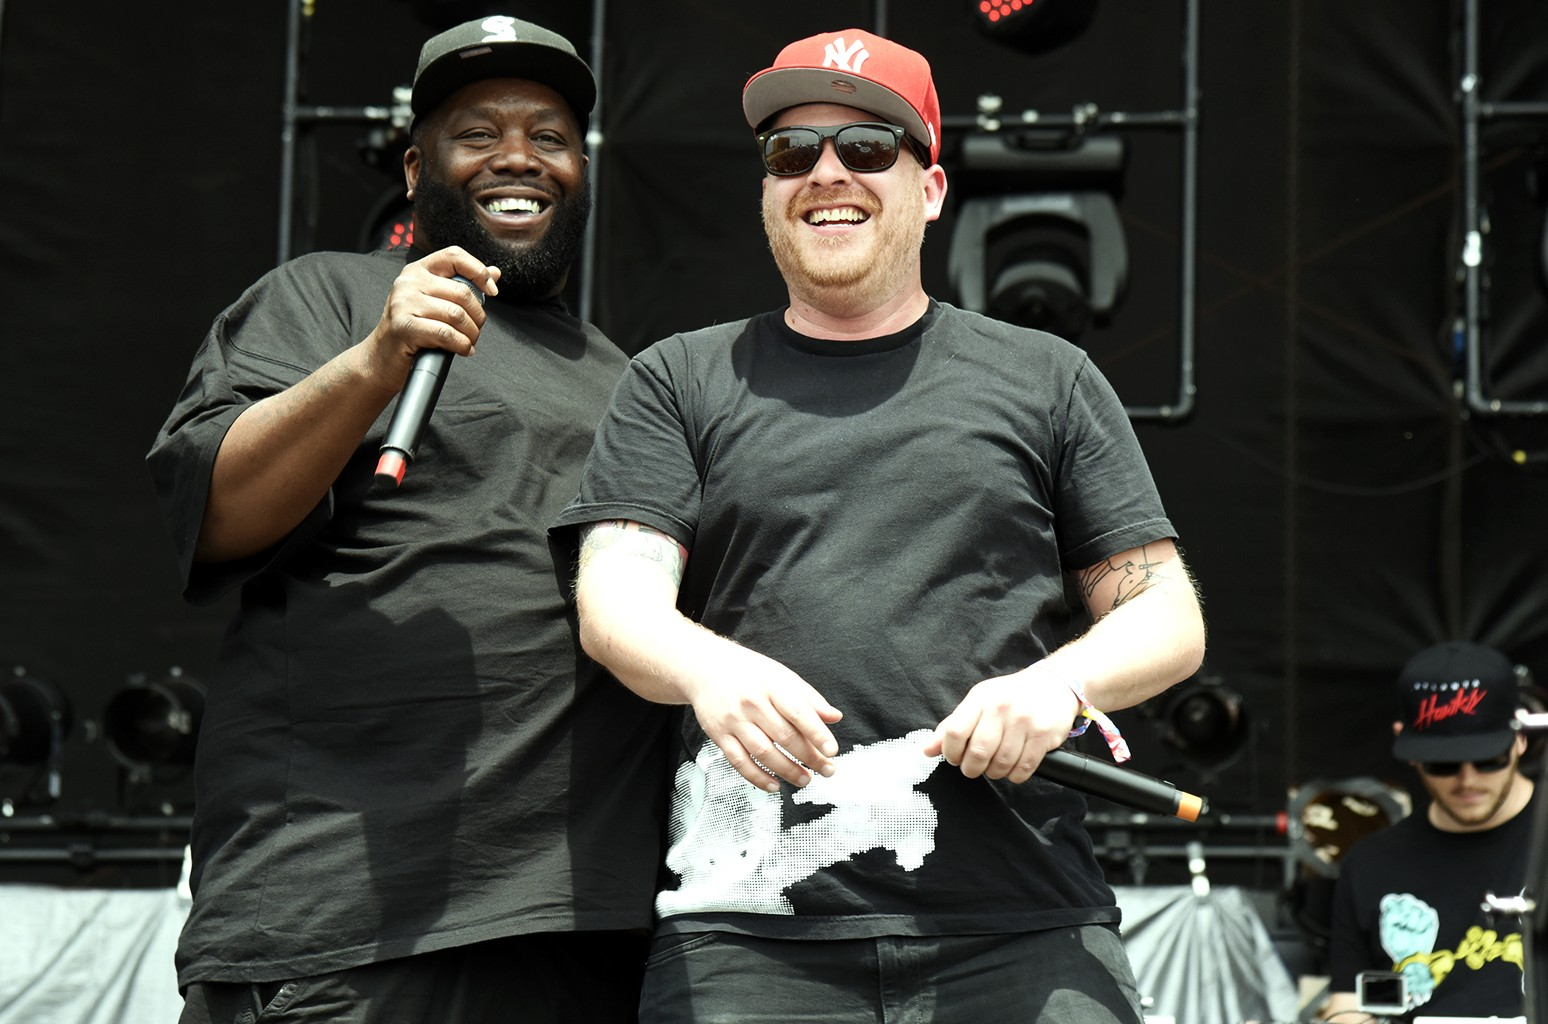 Killer Mike and El-P of Run the Jewels